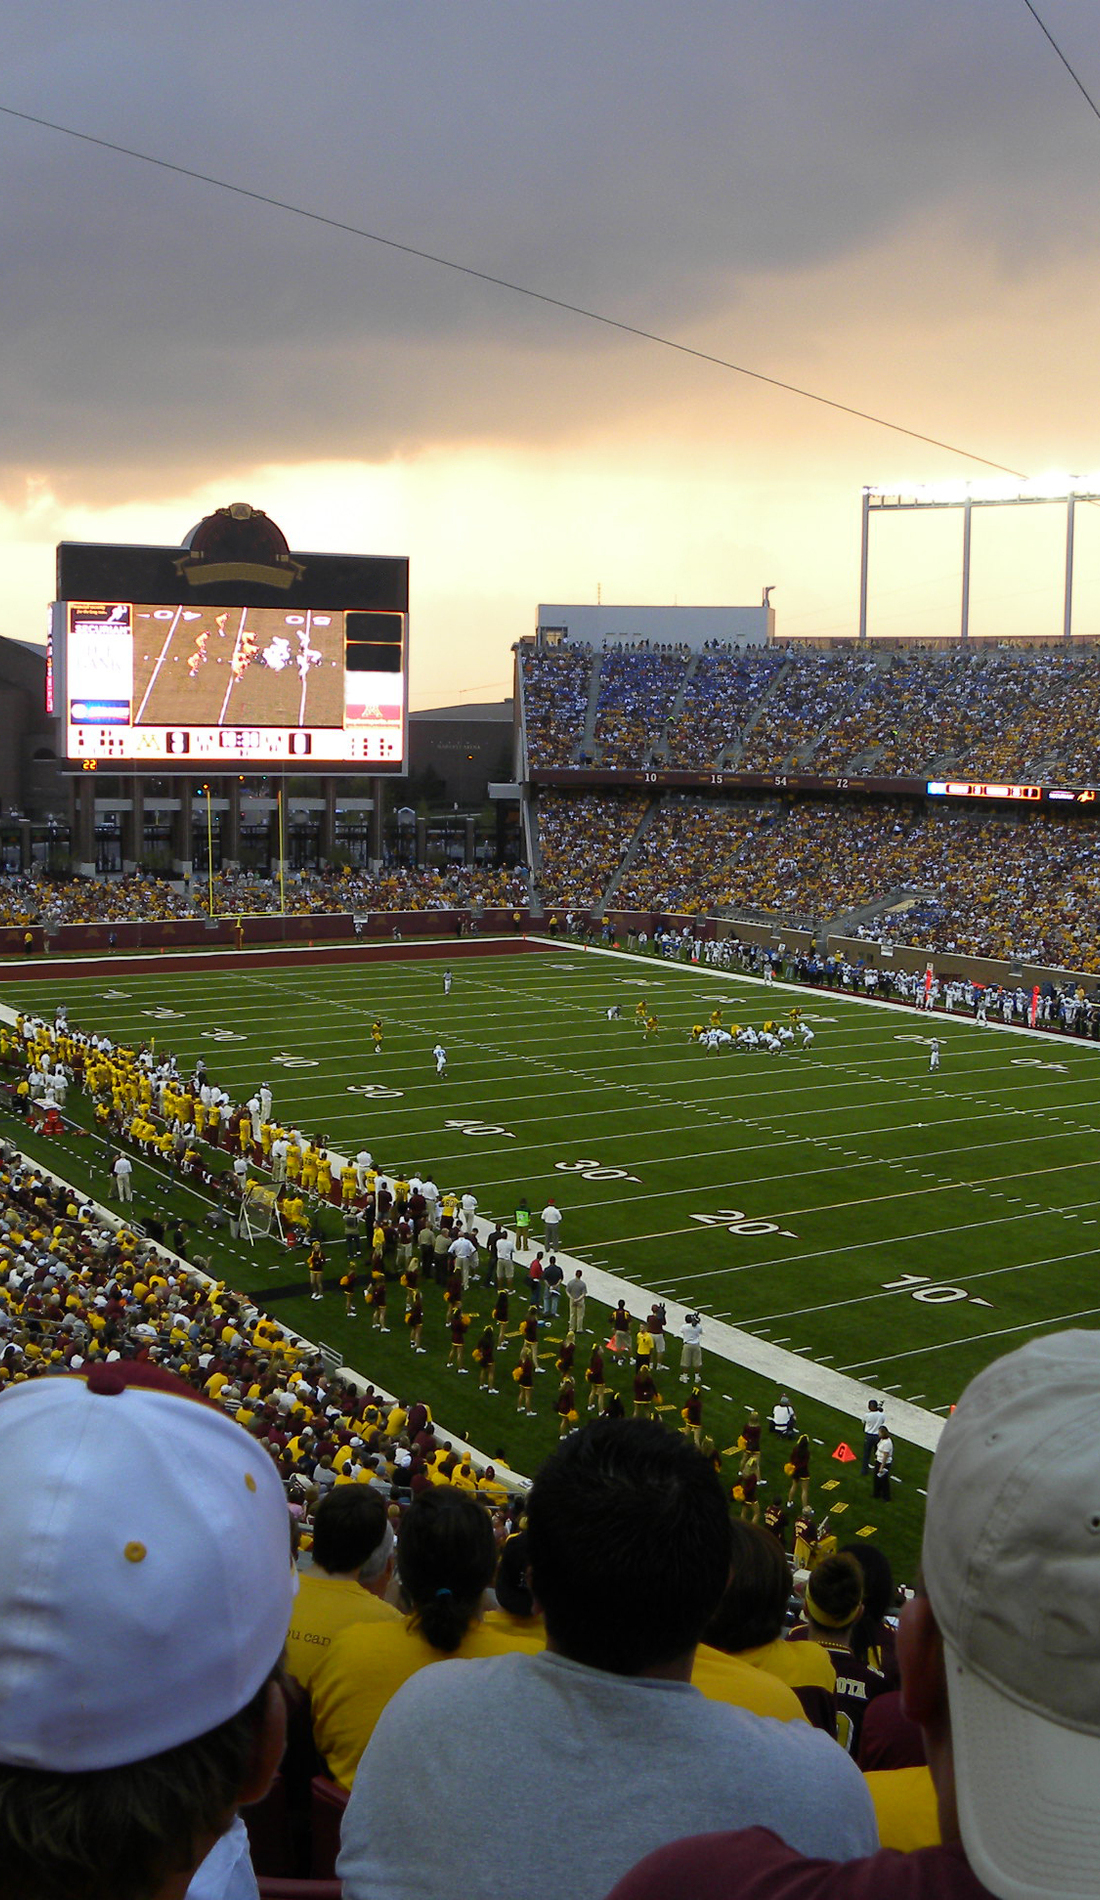 A Minnesota Golden Gophers Football live event